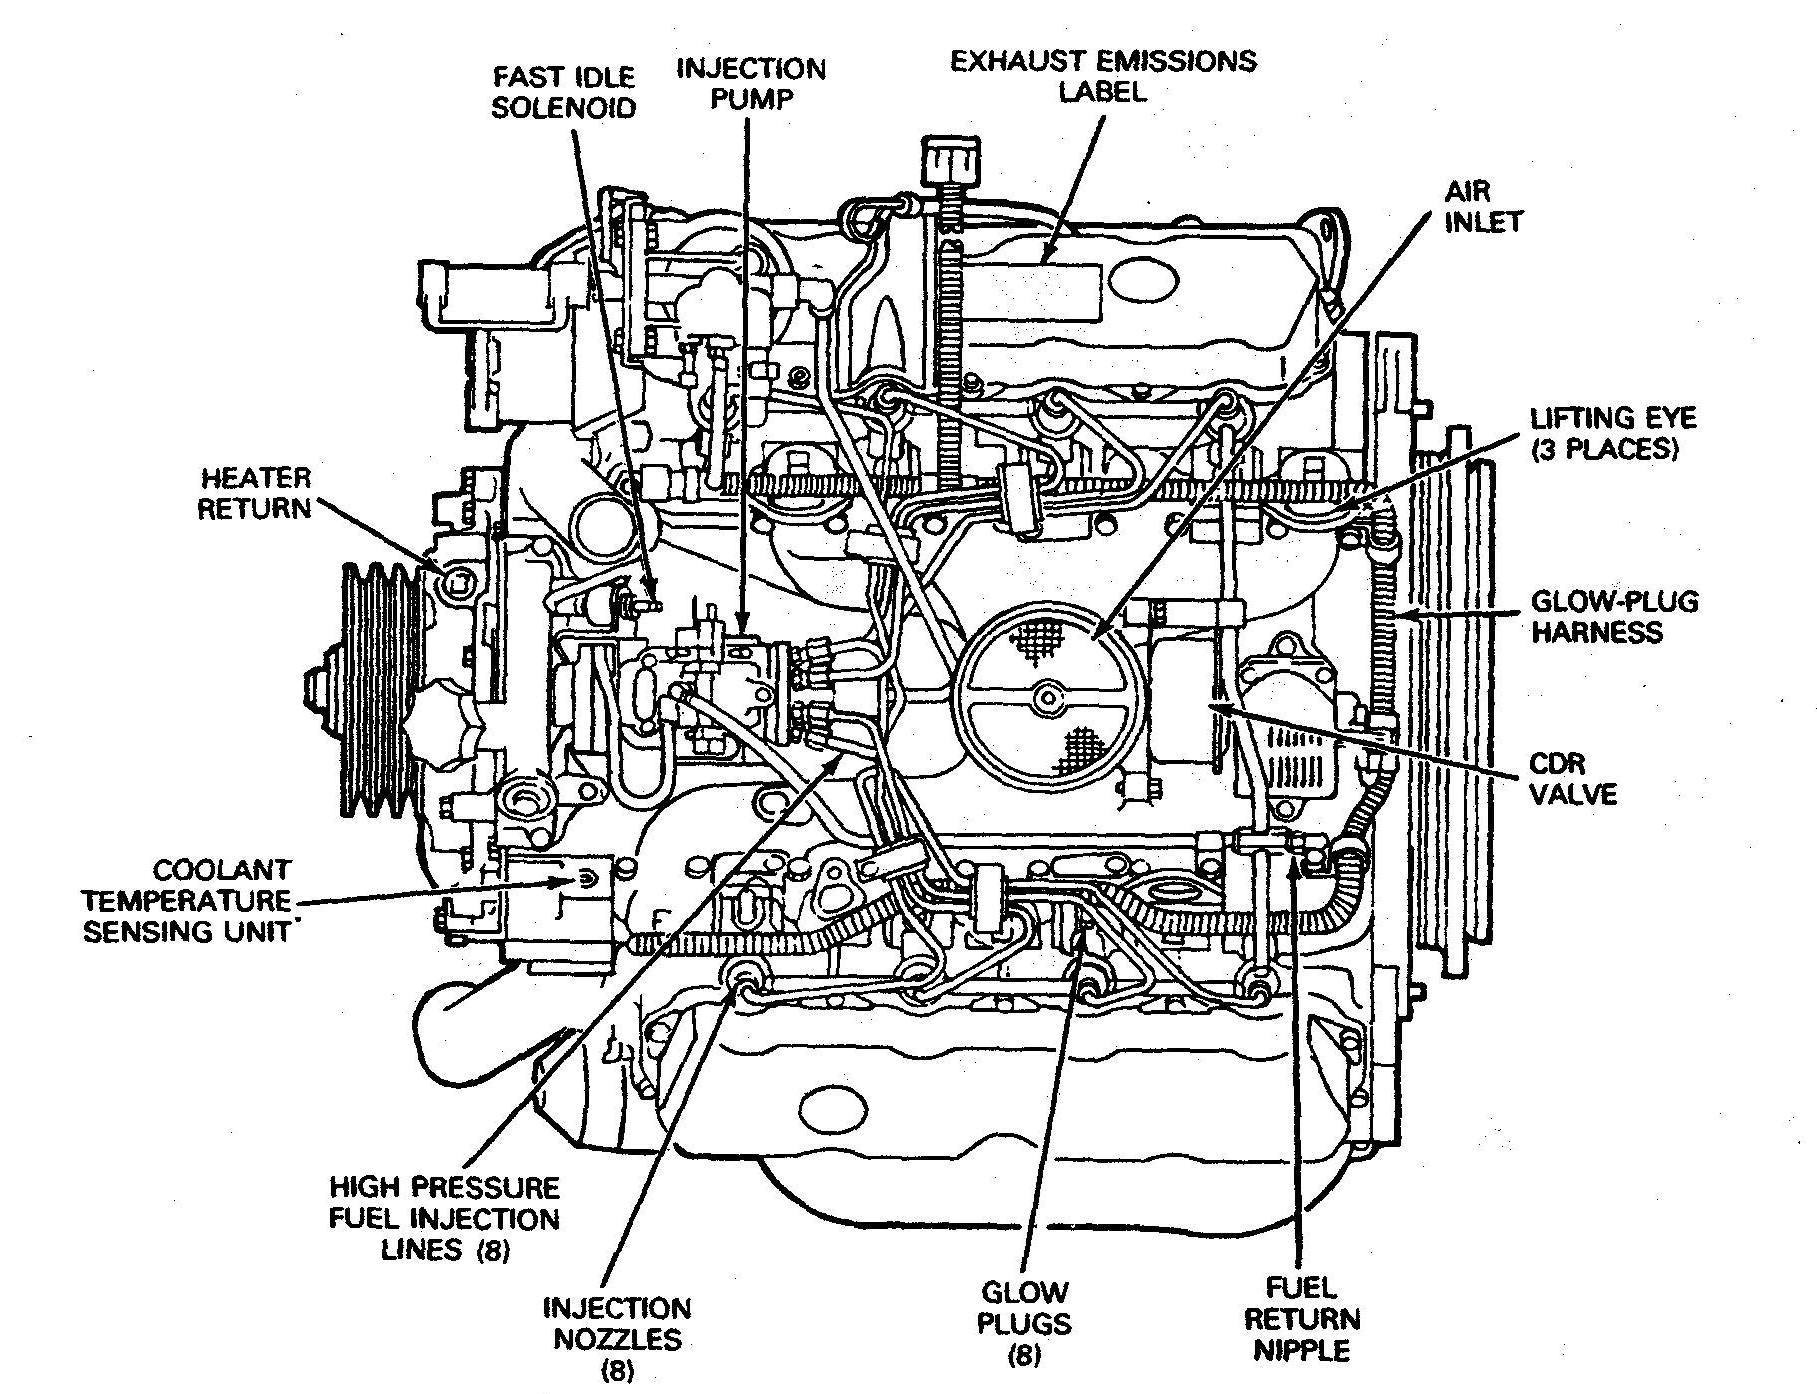 1995 ford Mustang Engine Diagram ford V6 3 7 Engine Diagram ford Wiring Diagrams Instructions Of 1995 ford Mustang Engine Diagram